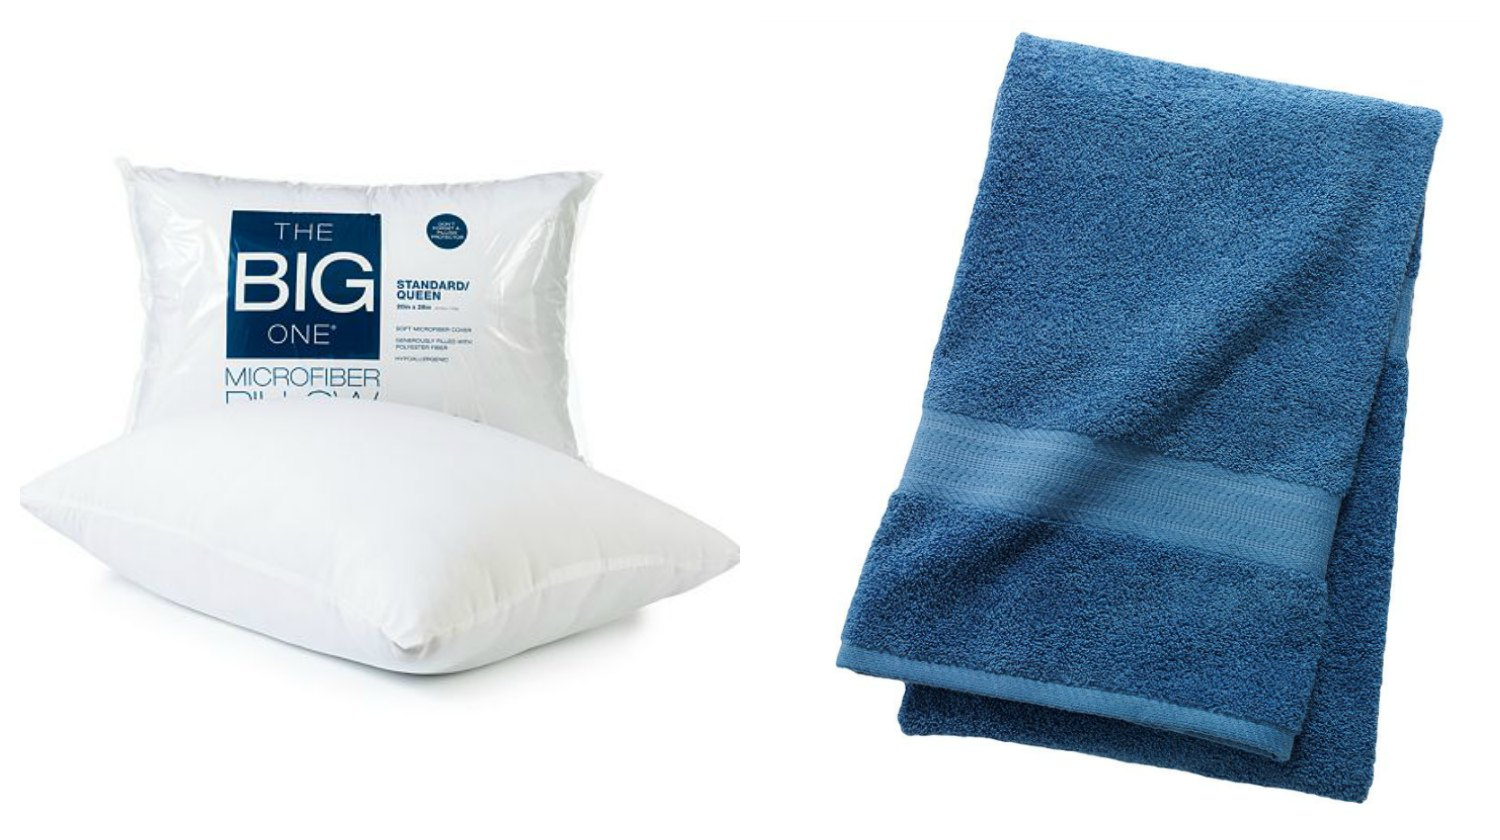 Pillows Online Sale Bath Towels And Pillows From Kohl 39s For Just 2 54 Dwym